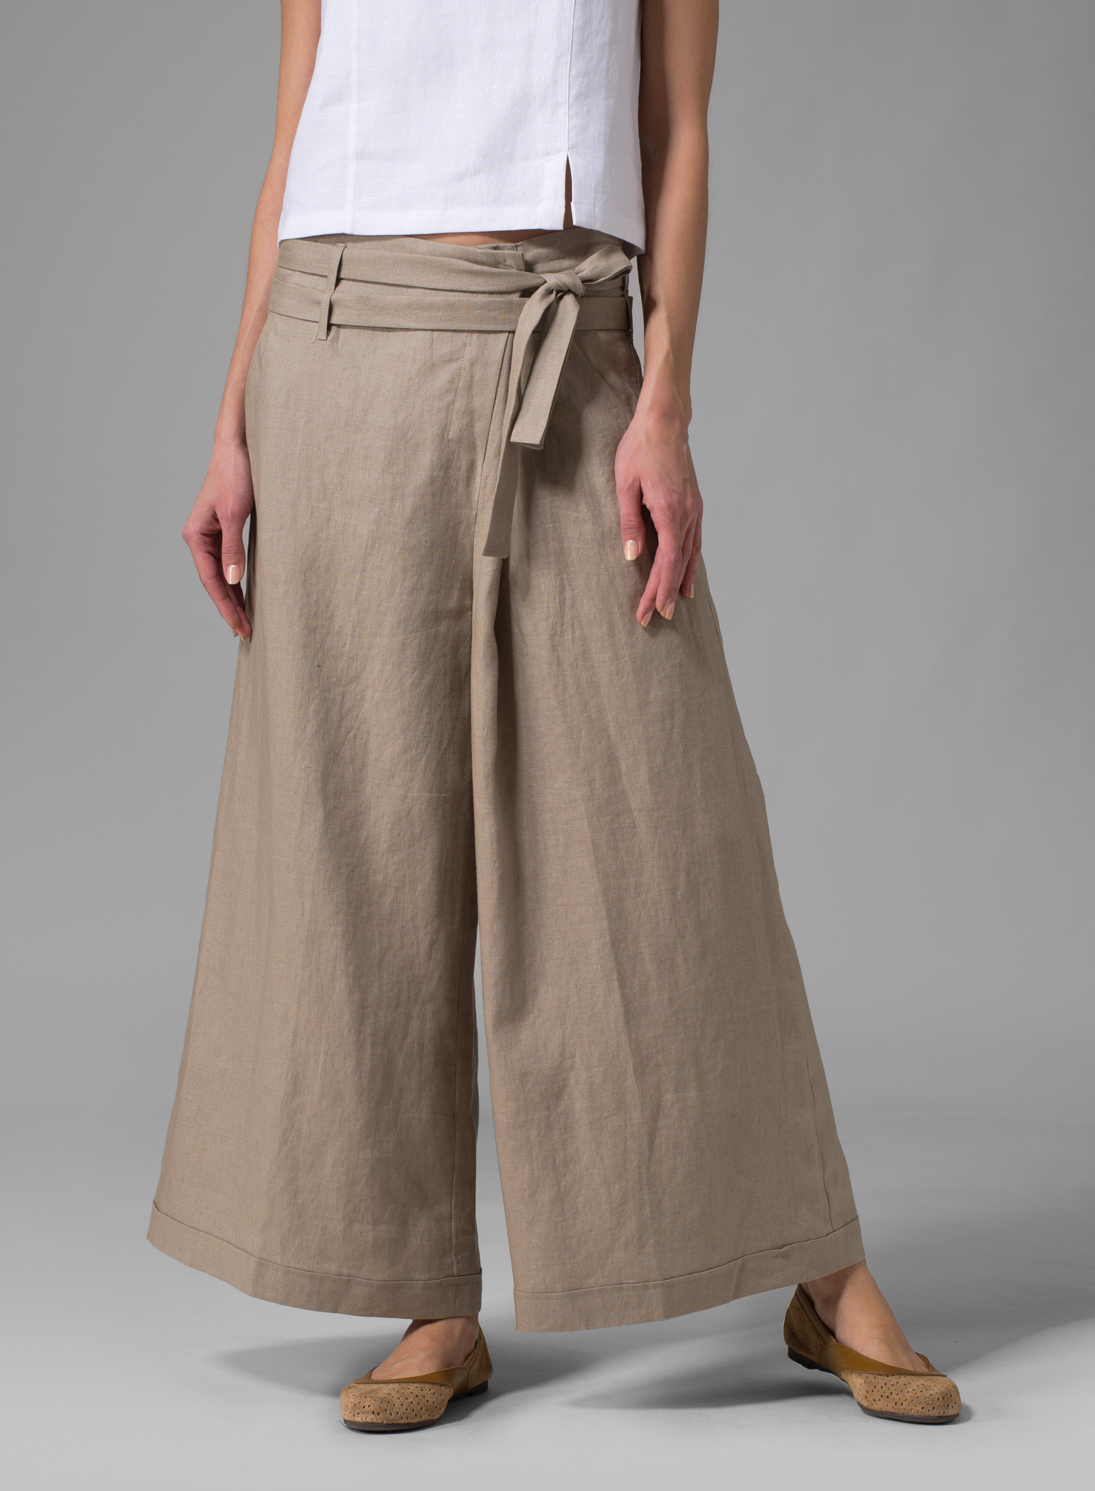 The hem of your pants should just barely skim the ground, allowing the toe of your shoes to be visible. (For an even more fashion-forward take, try hemming your pants about an inch above your ankle.) Below, we shopped out seven different ways you can wear wide leg pants with flats this summer.